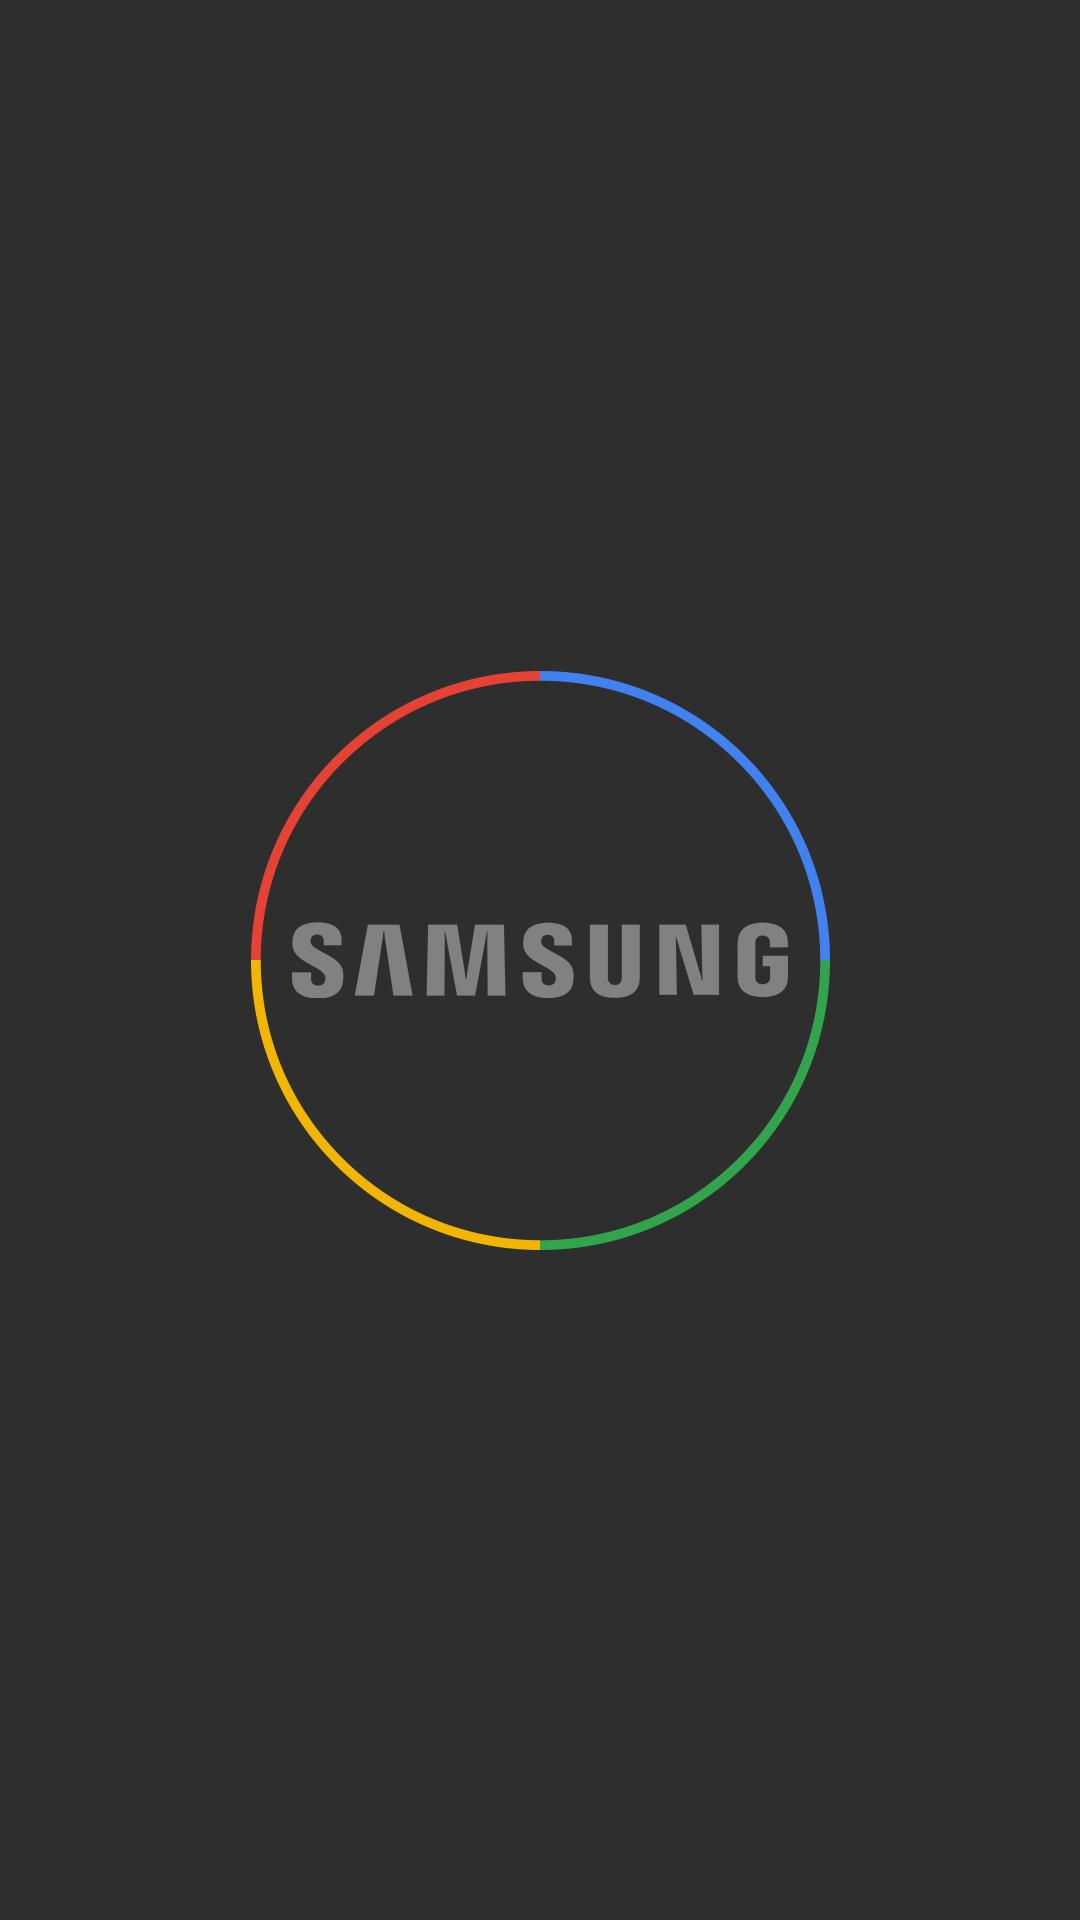 Samsung Android Minimal Background Hd Wallpaper